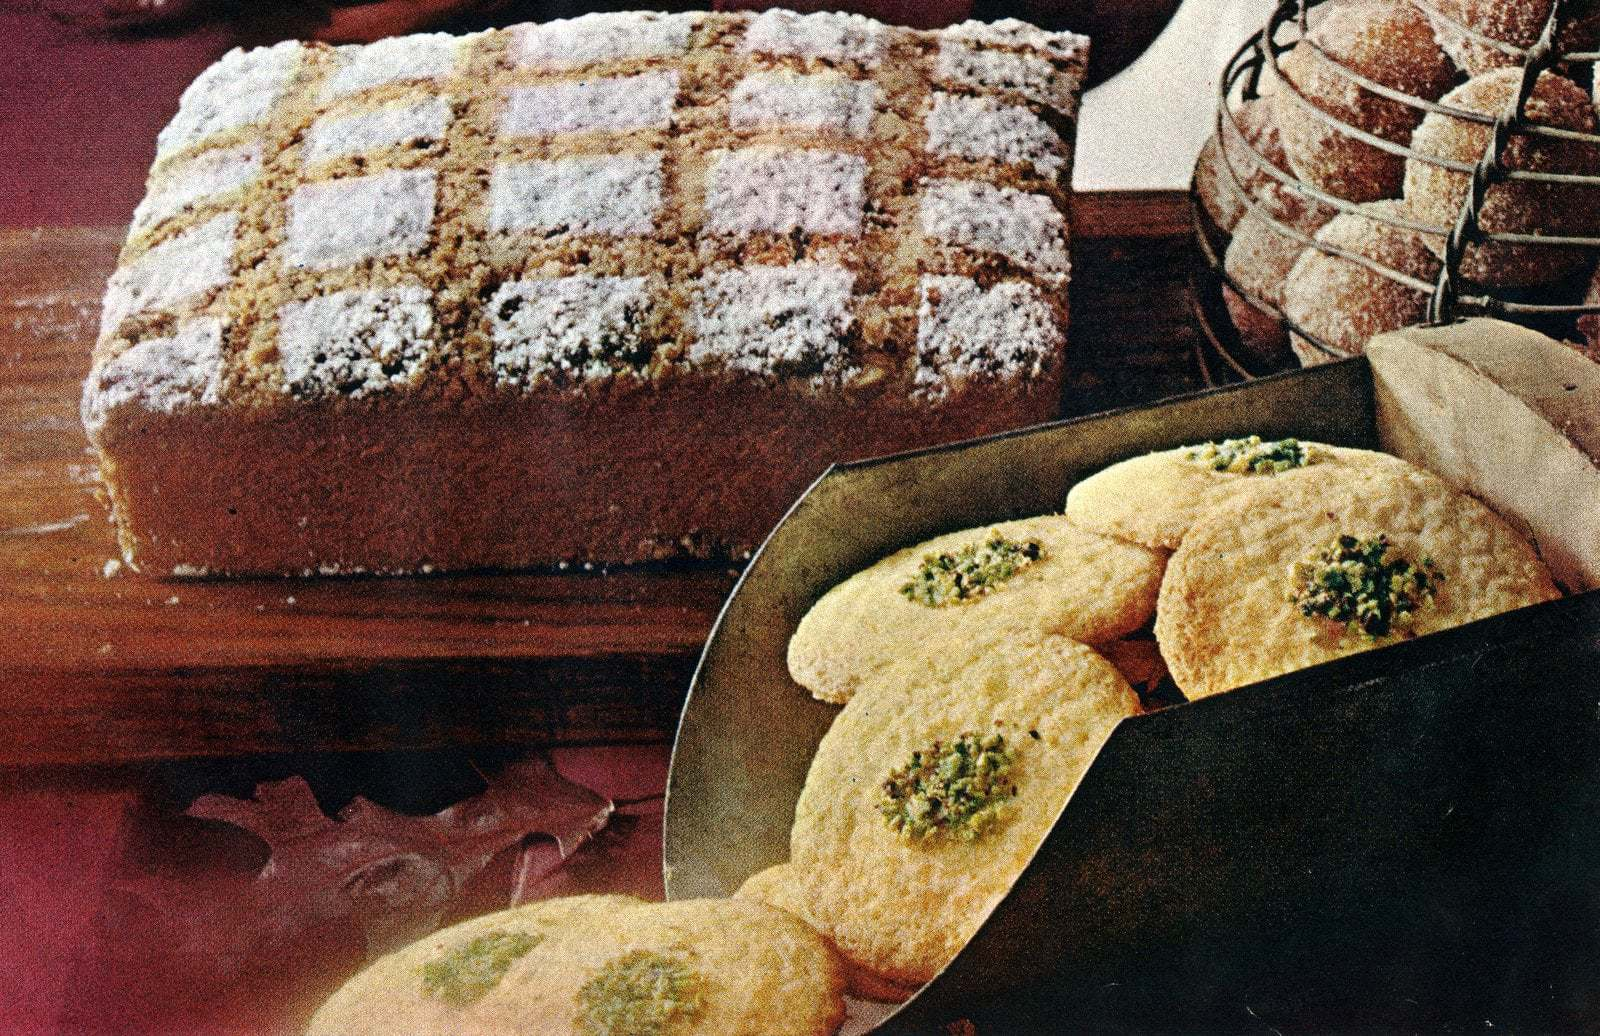 Old-fashioned bake sale recipes (1966) and vintage recipe cards